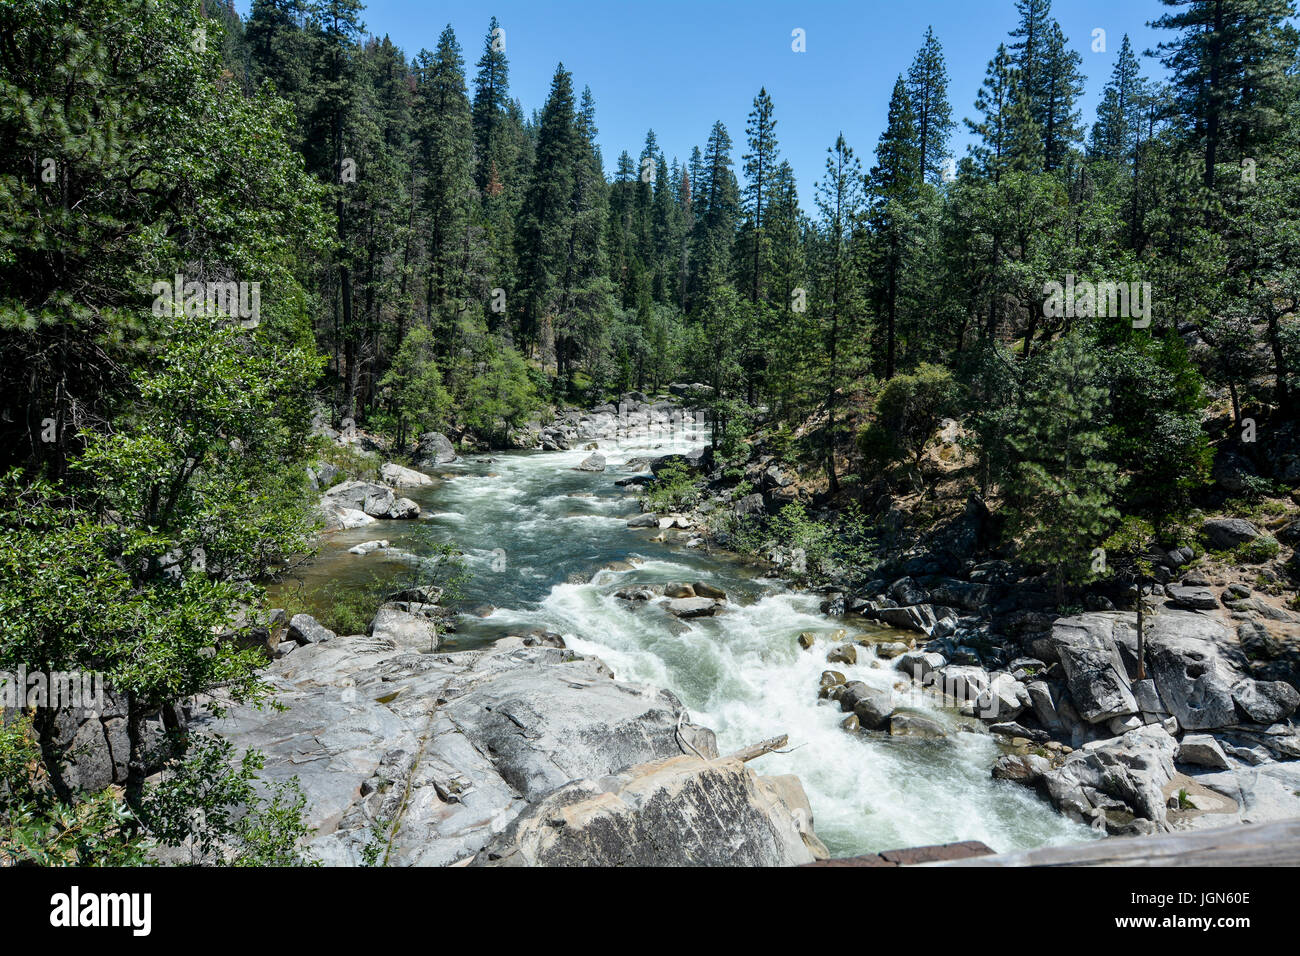 North Fork of the Stanislaus River passing through Calaveras Big Trees State Park, California, USA, on a clear sky - Stock Image